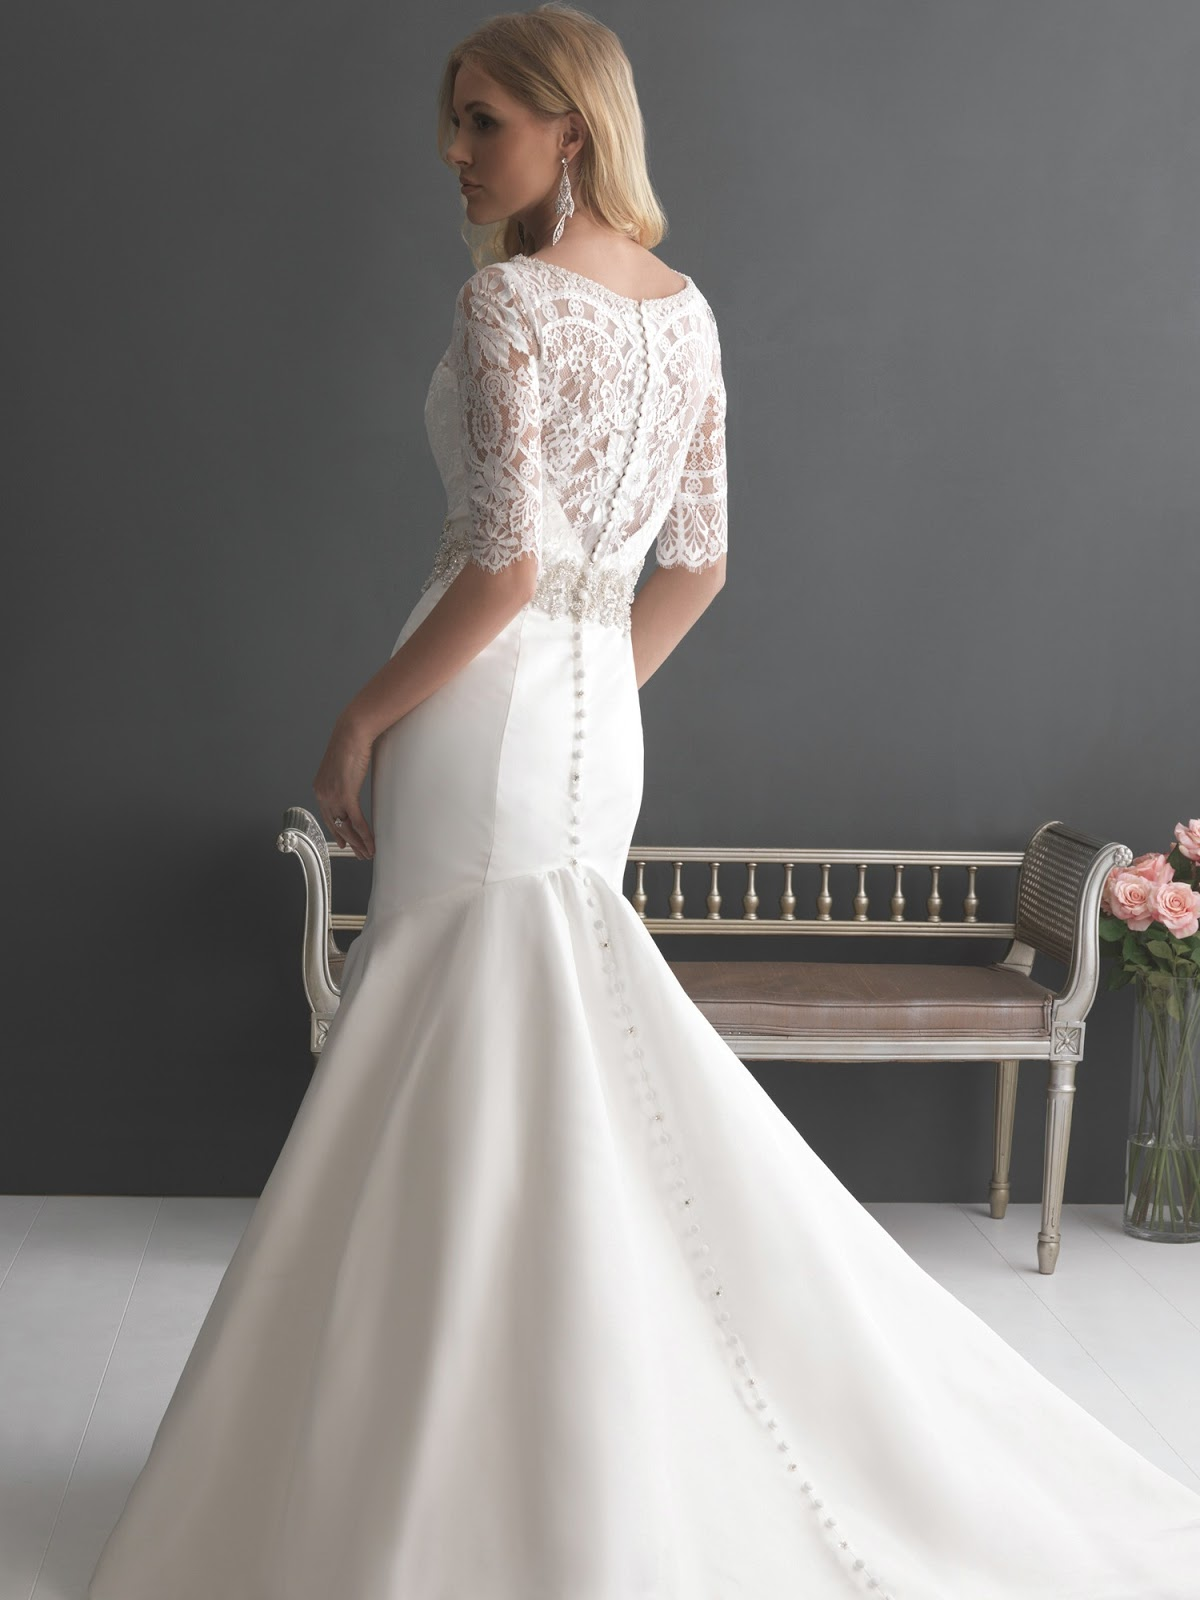 Dressybridal allure wedding dresses fall 2013 collection for Allure long sleeve wedding dress